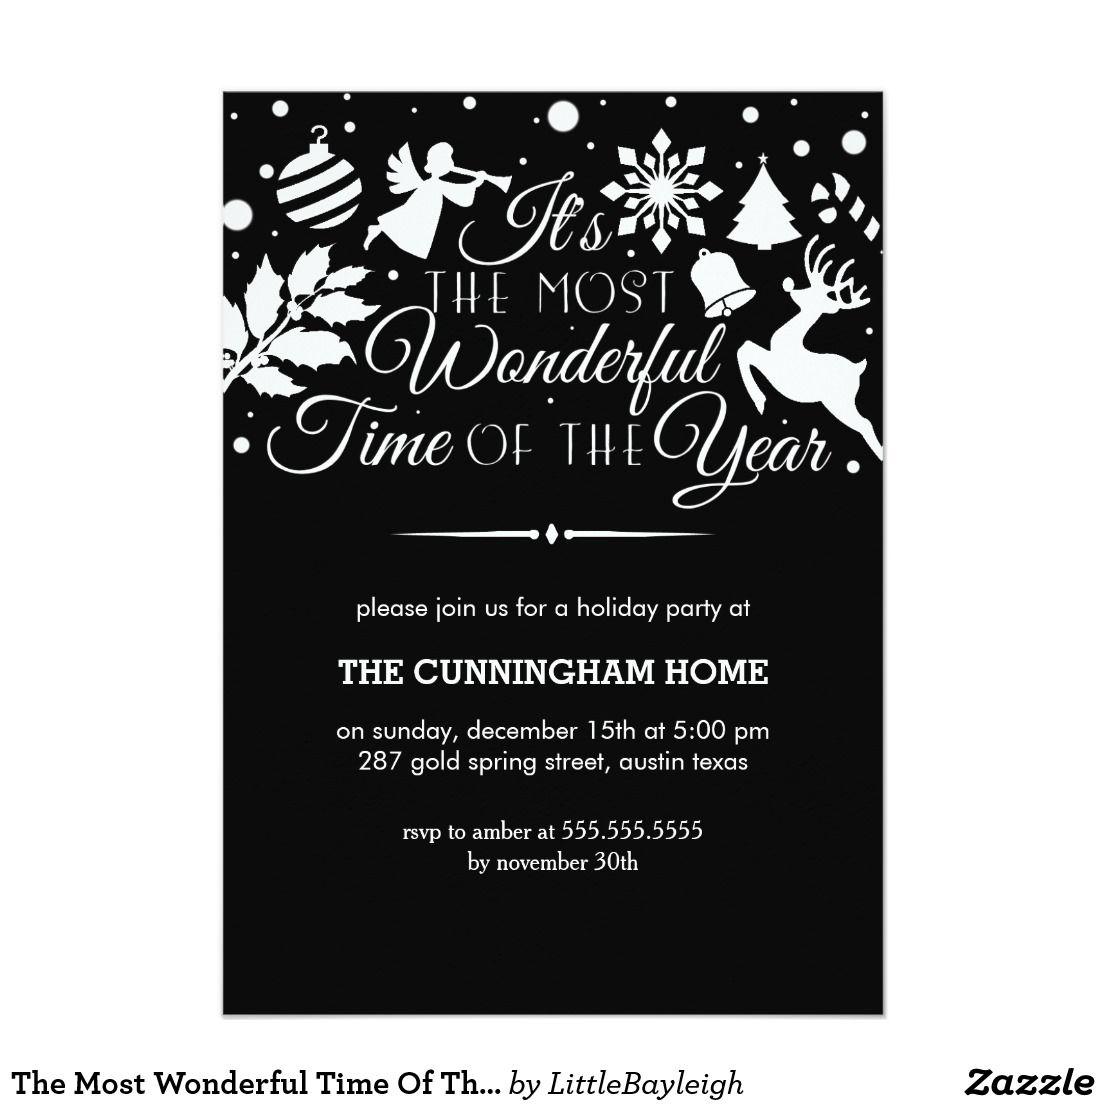 The Most Wonderful Time Of The Year Holiday Invite Zazzle Com Holiday Invitations Christmas Party Invitations Invitations